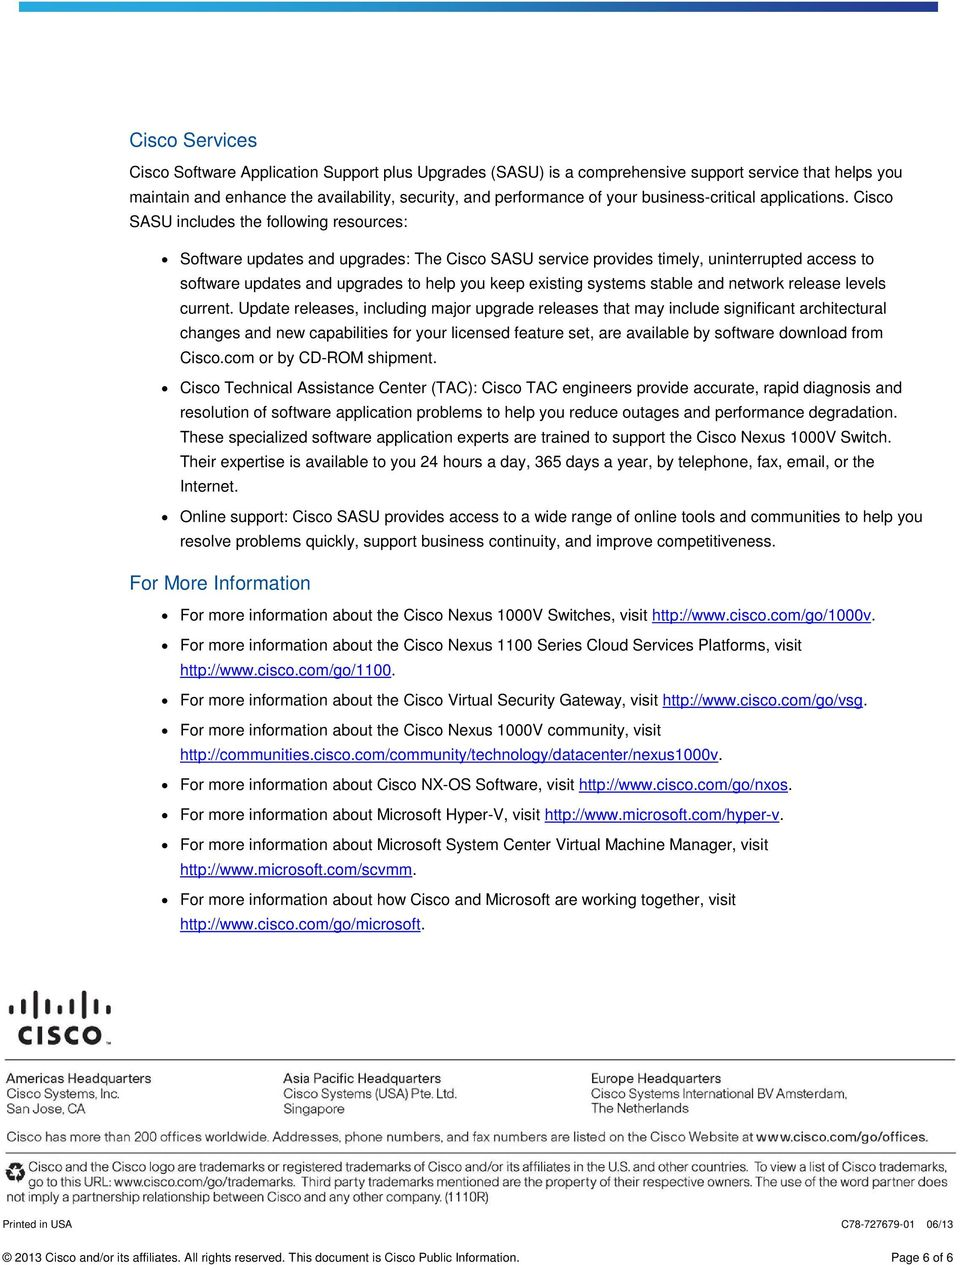 Cisco SASU includes the following resources: Software updates and upgrades: The Cisco SASU service provides timely, uninterrupted access to software updates and upgrades to help you keep existing